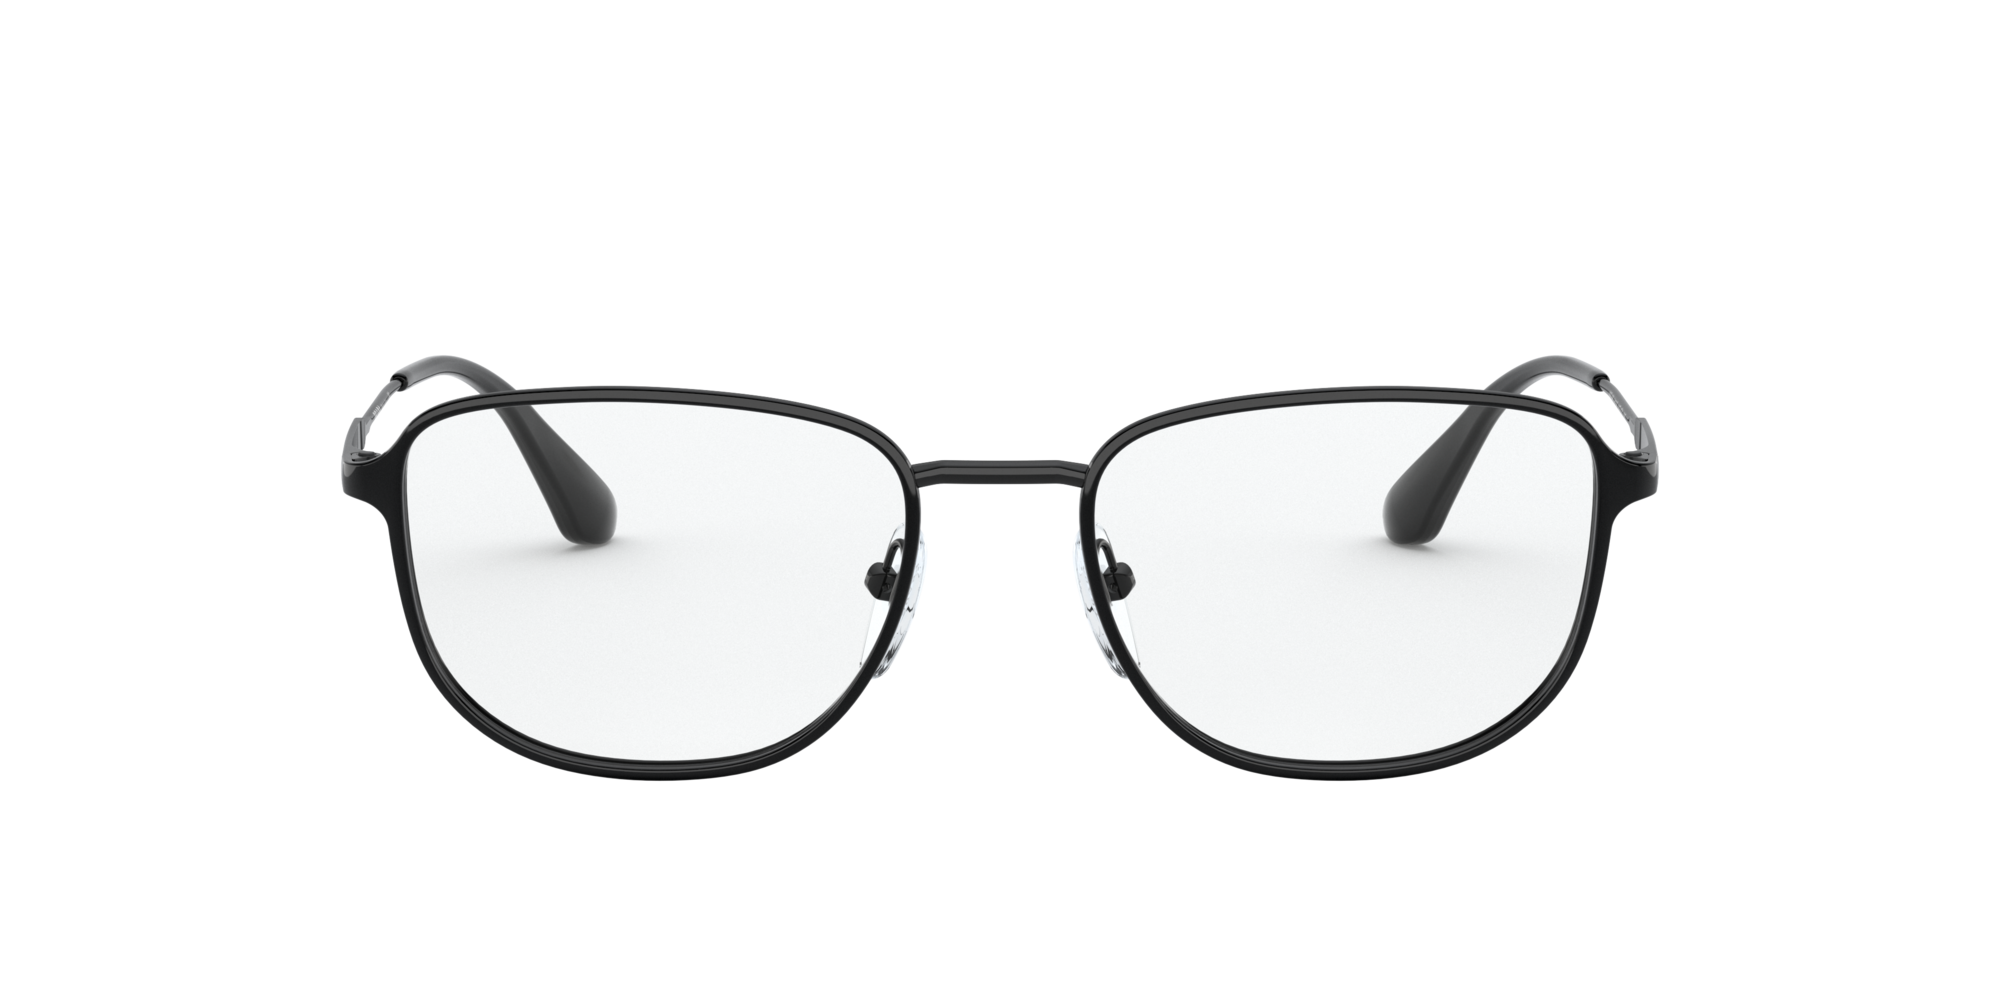 Image for PR 58XV CONCEPTUAL from LensCrafters | Glasses, Prescription Glasses Online, Eyewear